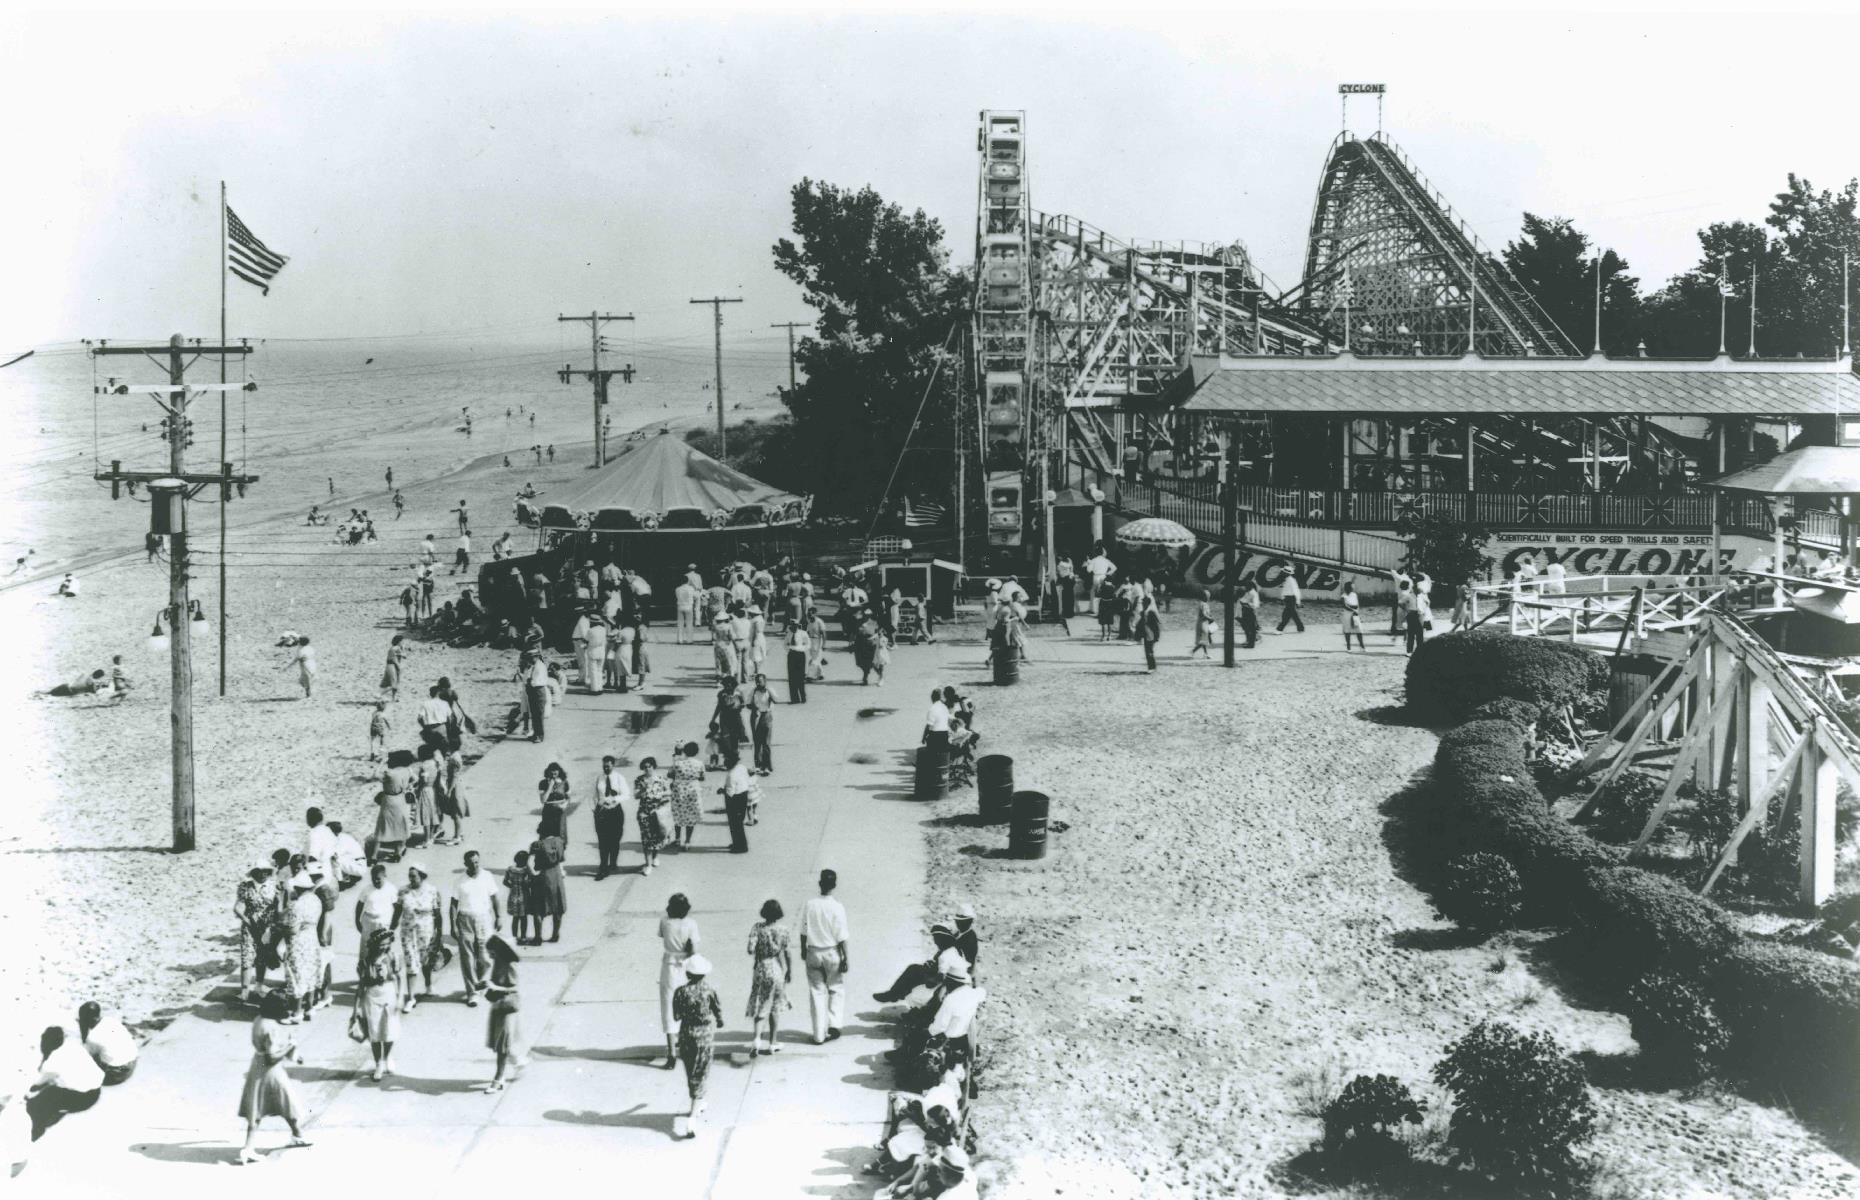 Slide 39 of 47: This theme park, one of the oldest in America, has always set great store by its thrill rides. The first roller coaster debuted here in 1892, a couple of decades after the park's inauguration, and this later shot shows the 1920s wooden Cyclone in the background. Cedar Point is known for its dizzying coasters today too.See more historic images of America's theme parks in full swing.